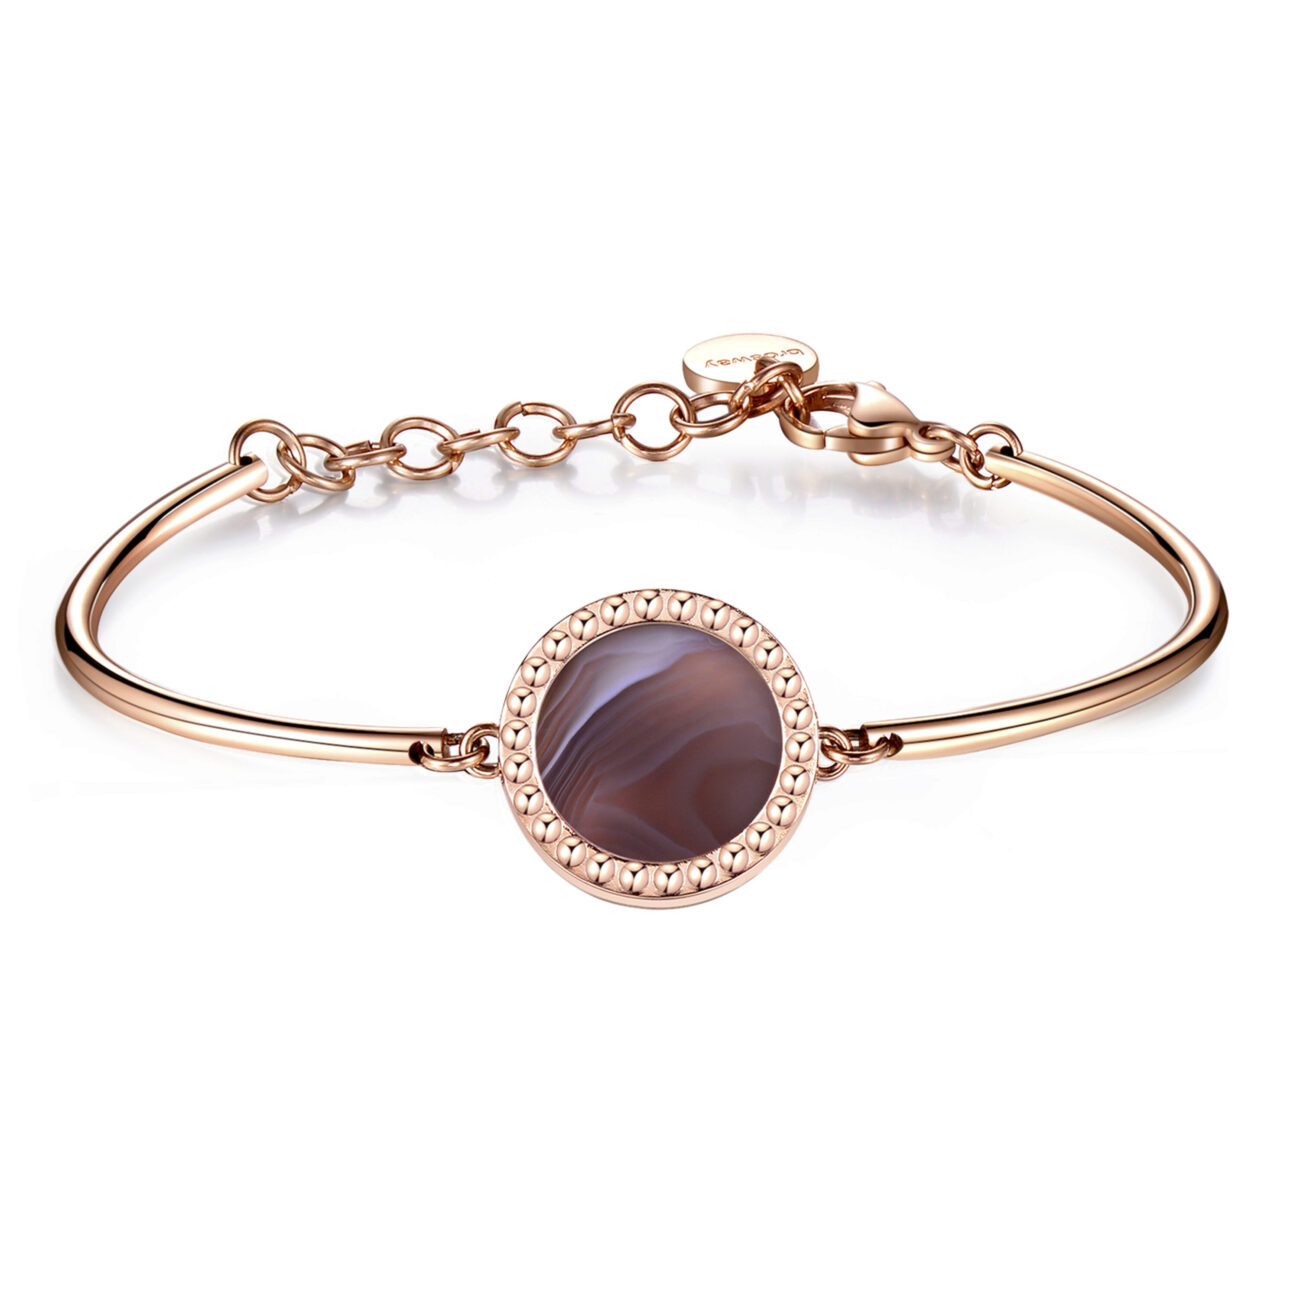 CREATIVITY, ENERGY, INTUITIONThis marvellous mineral retains sunlight and then emits its energy. A stone that enhances creativity and boosts intuitive powers. 316L Stainless steel bracelet, rose gold PVD with Botswana agate disc.